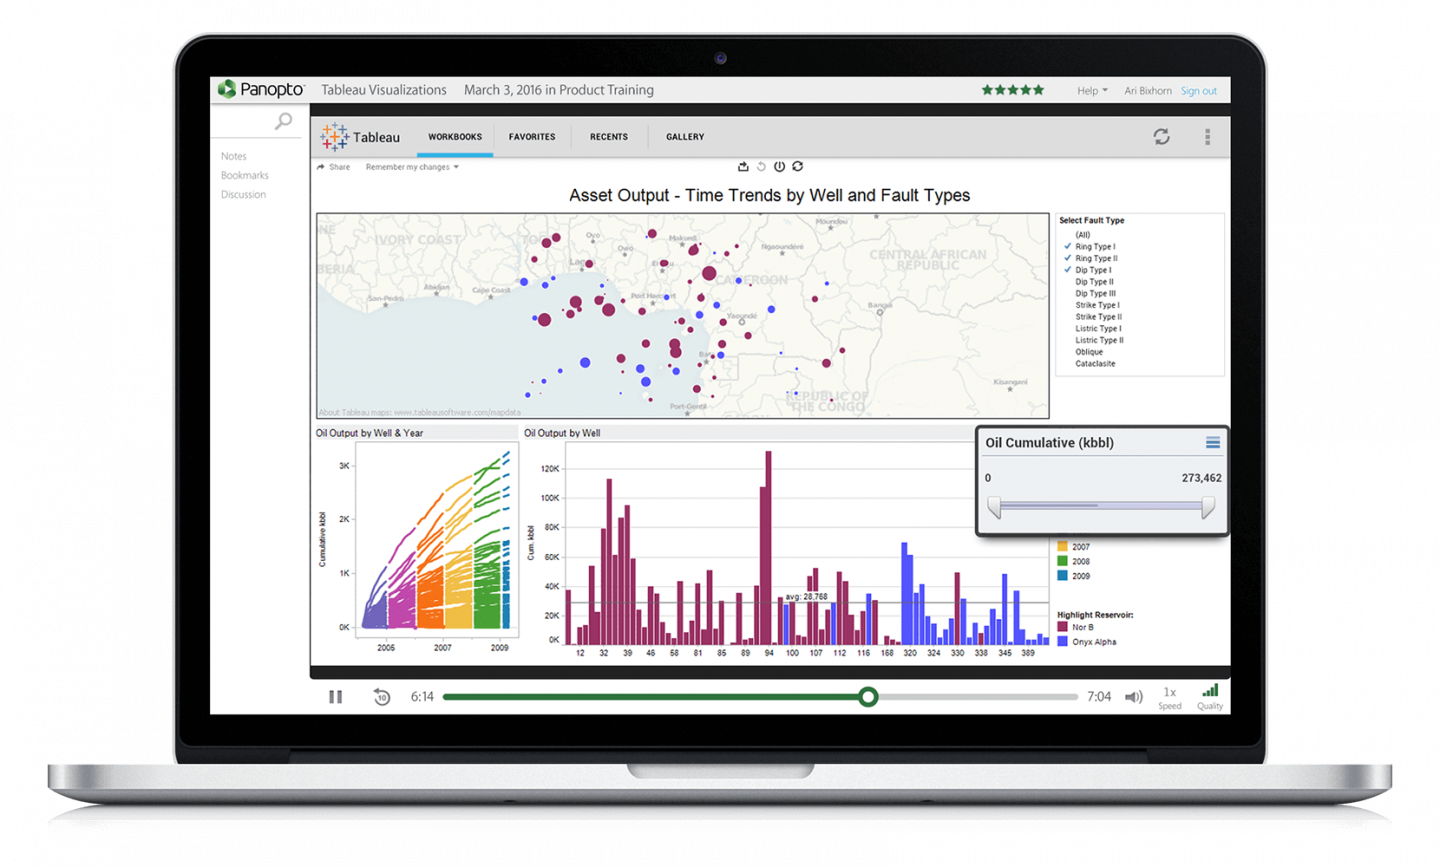 Panopto's analytics dashboard integrates with other data feedback software platforms like Tableau